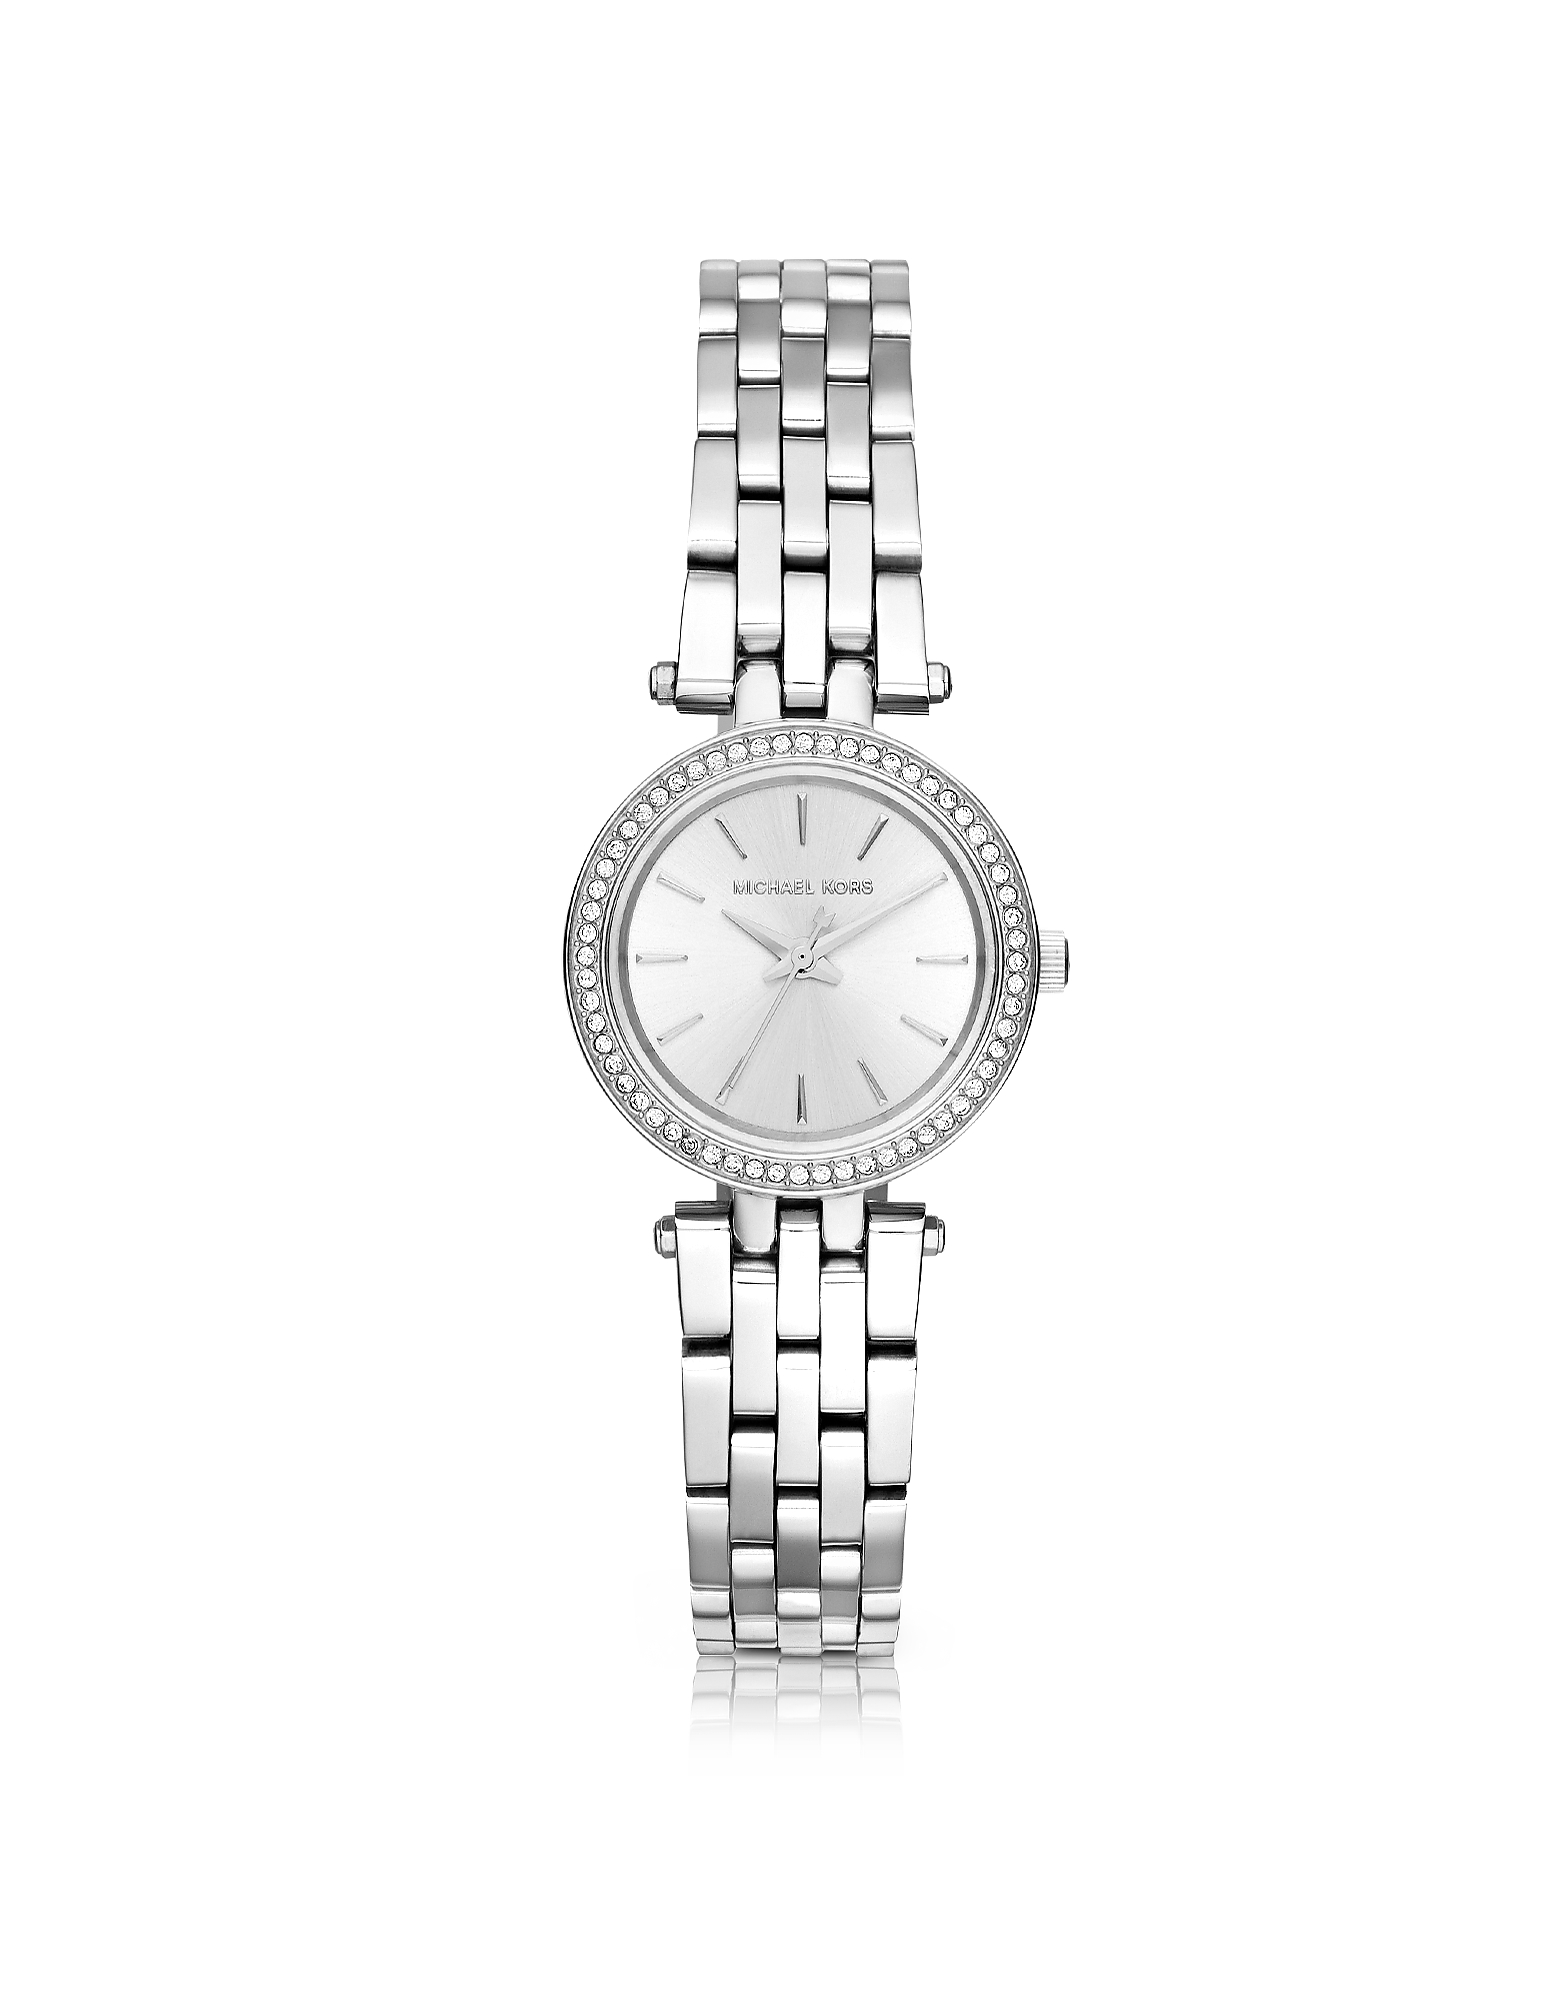 Michael Kors Designer Women's Watches, Petite Darci Stainless Steel Women's Watch